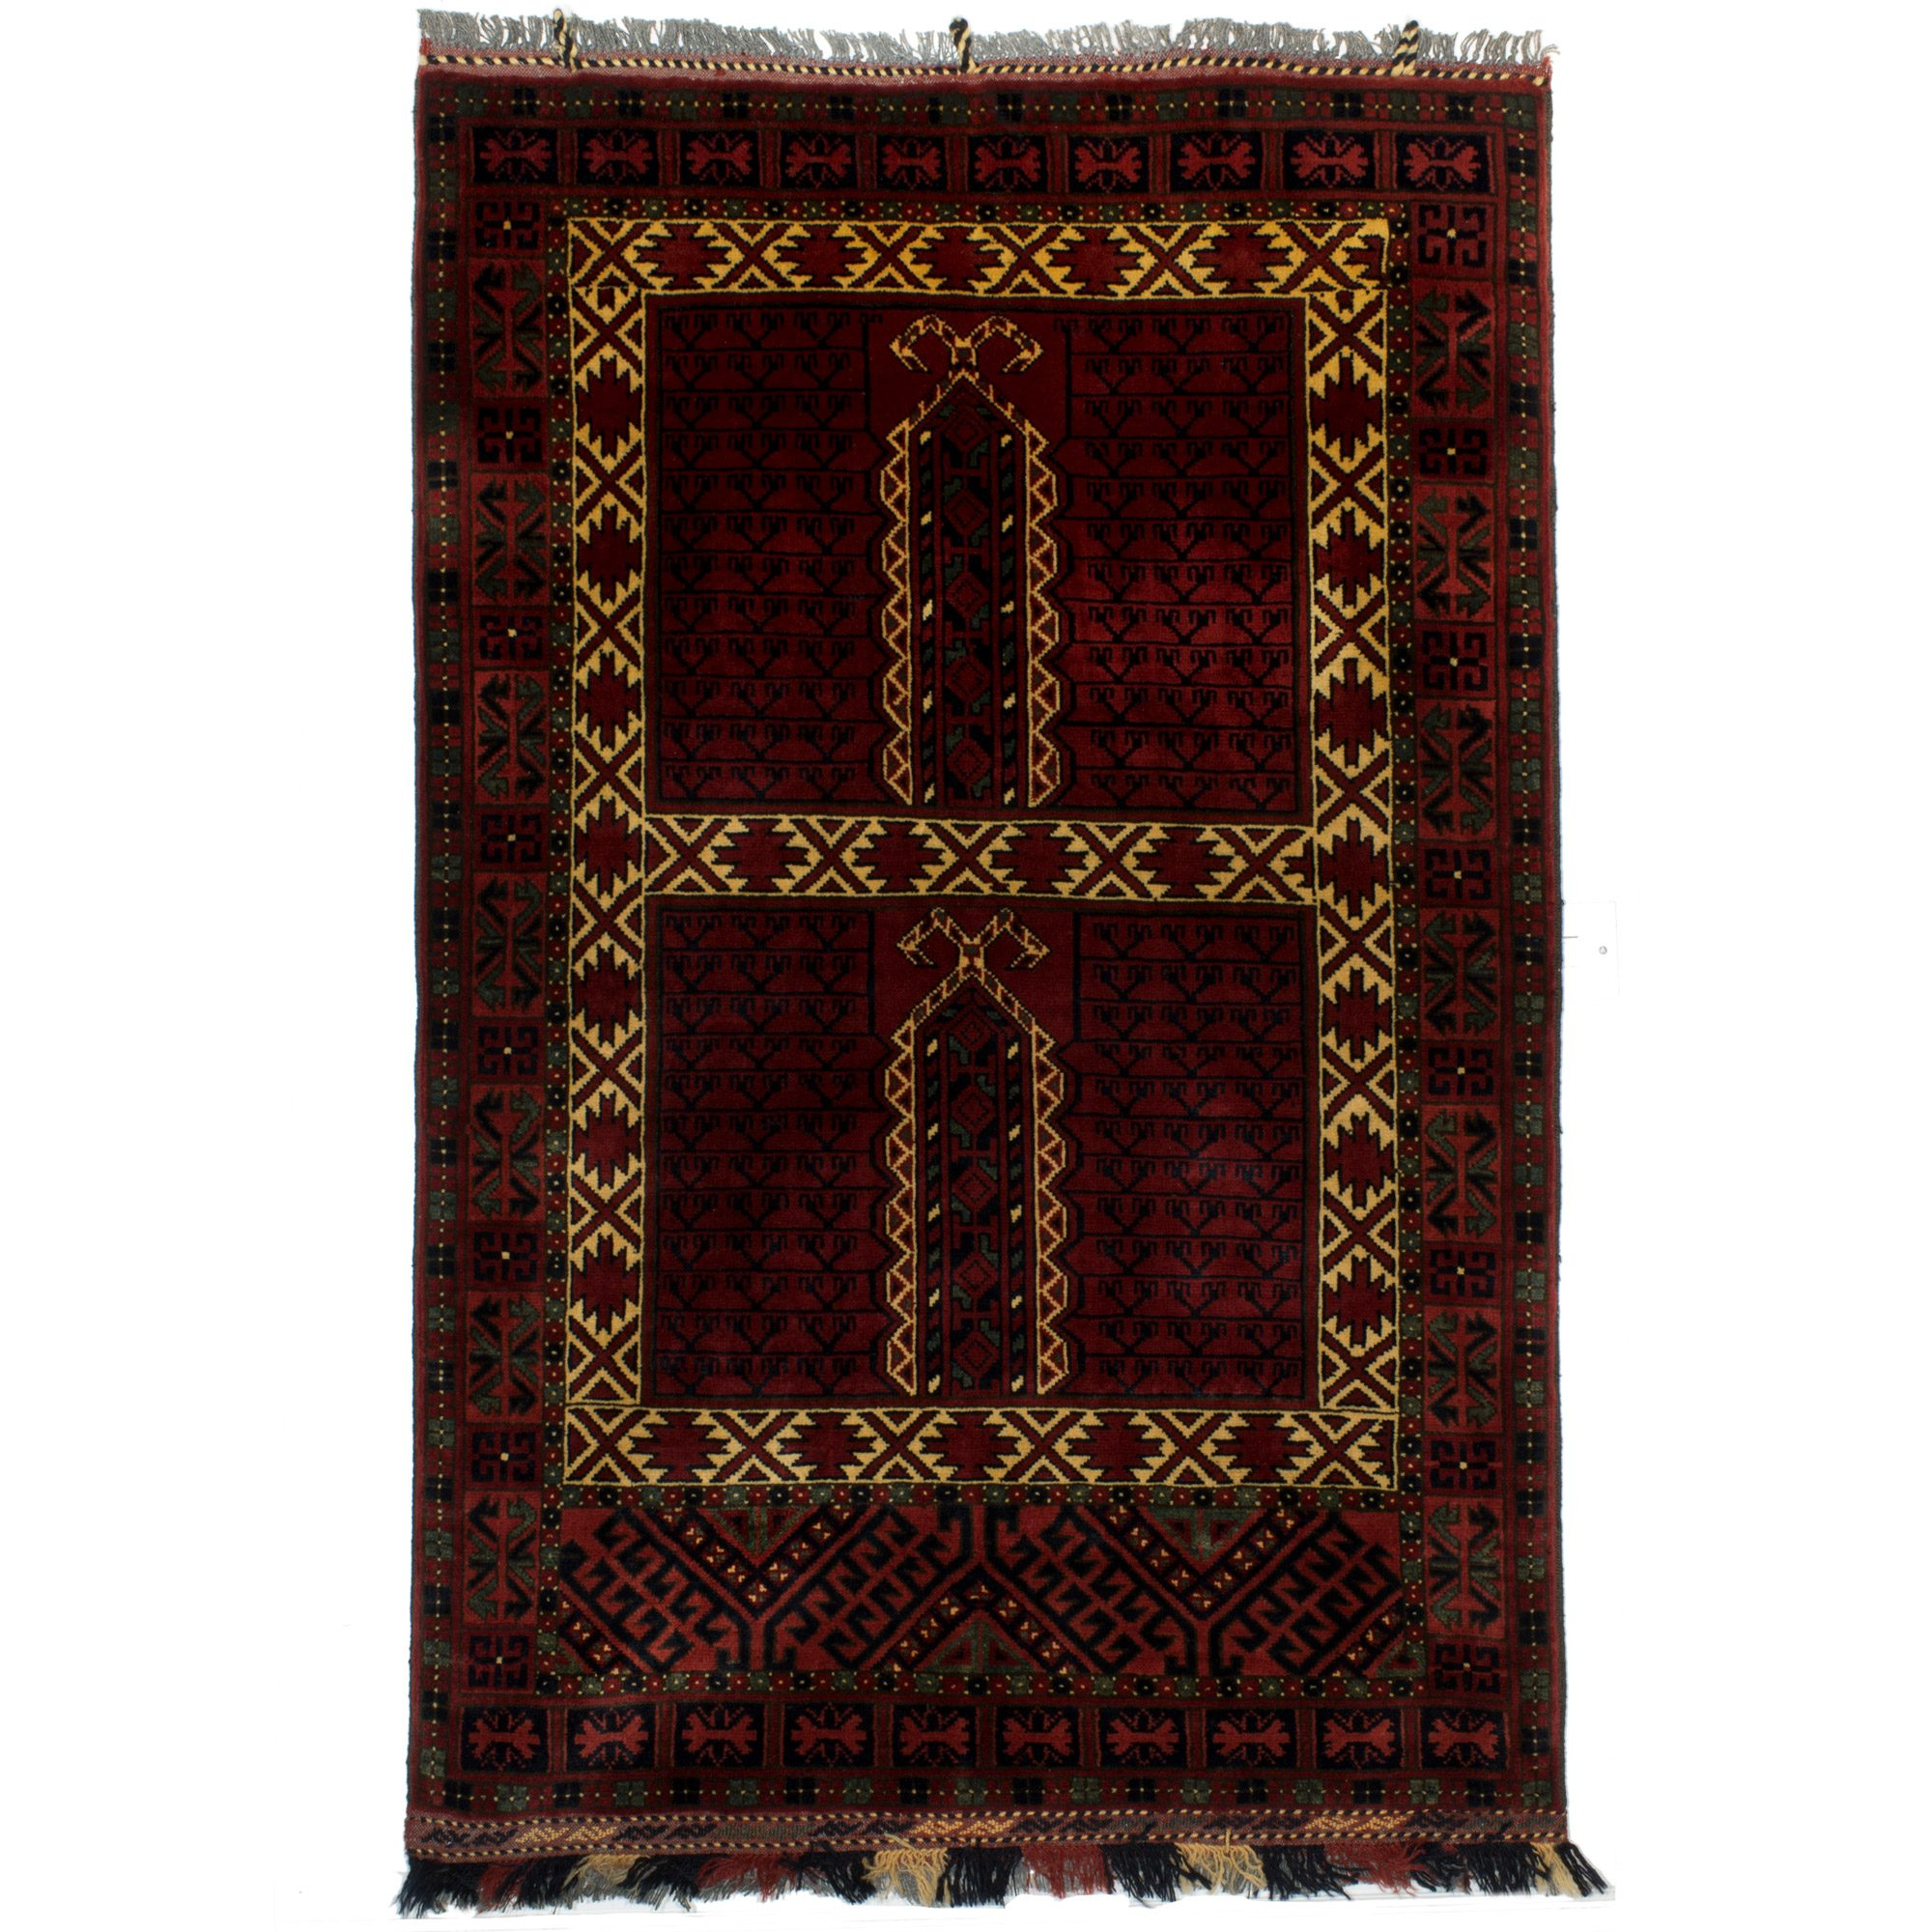 Afghanistan Hatchli Rug With Two Large Square And Dark Red Blue Colours